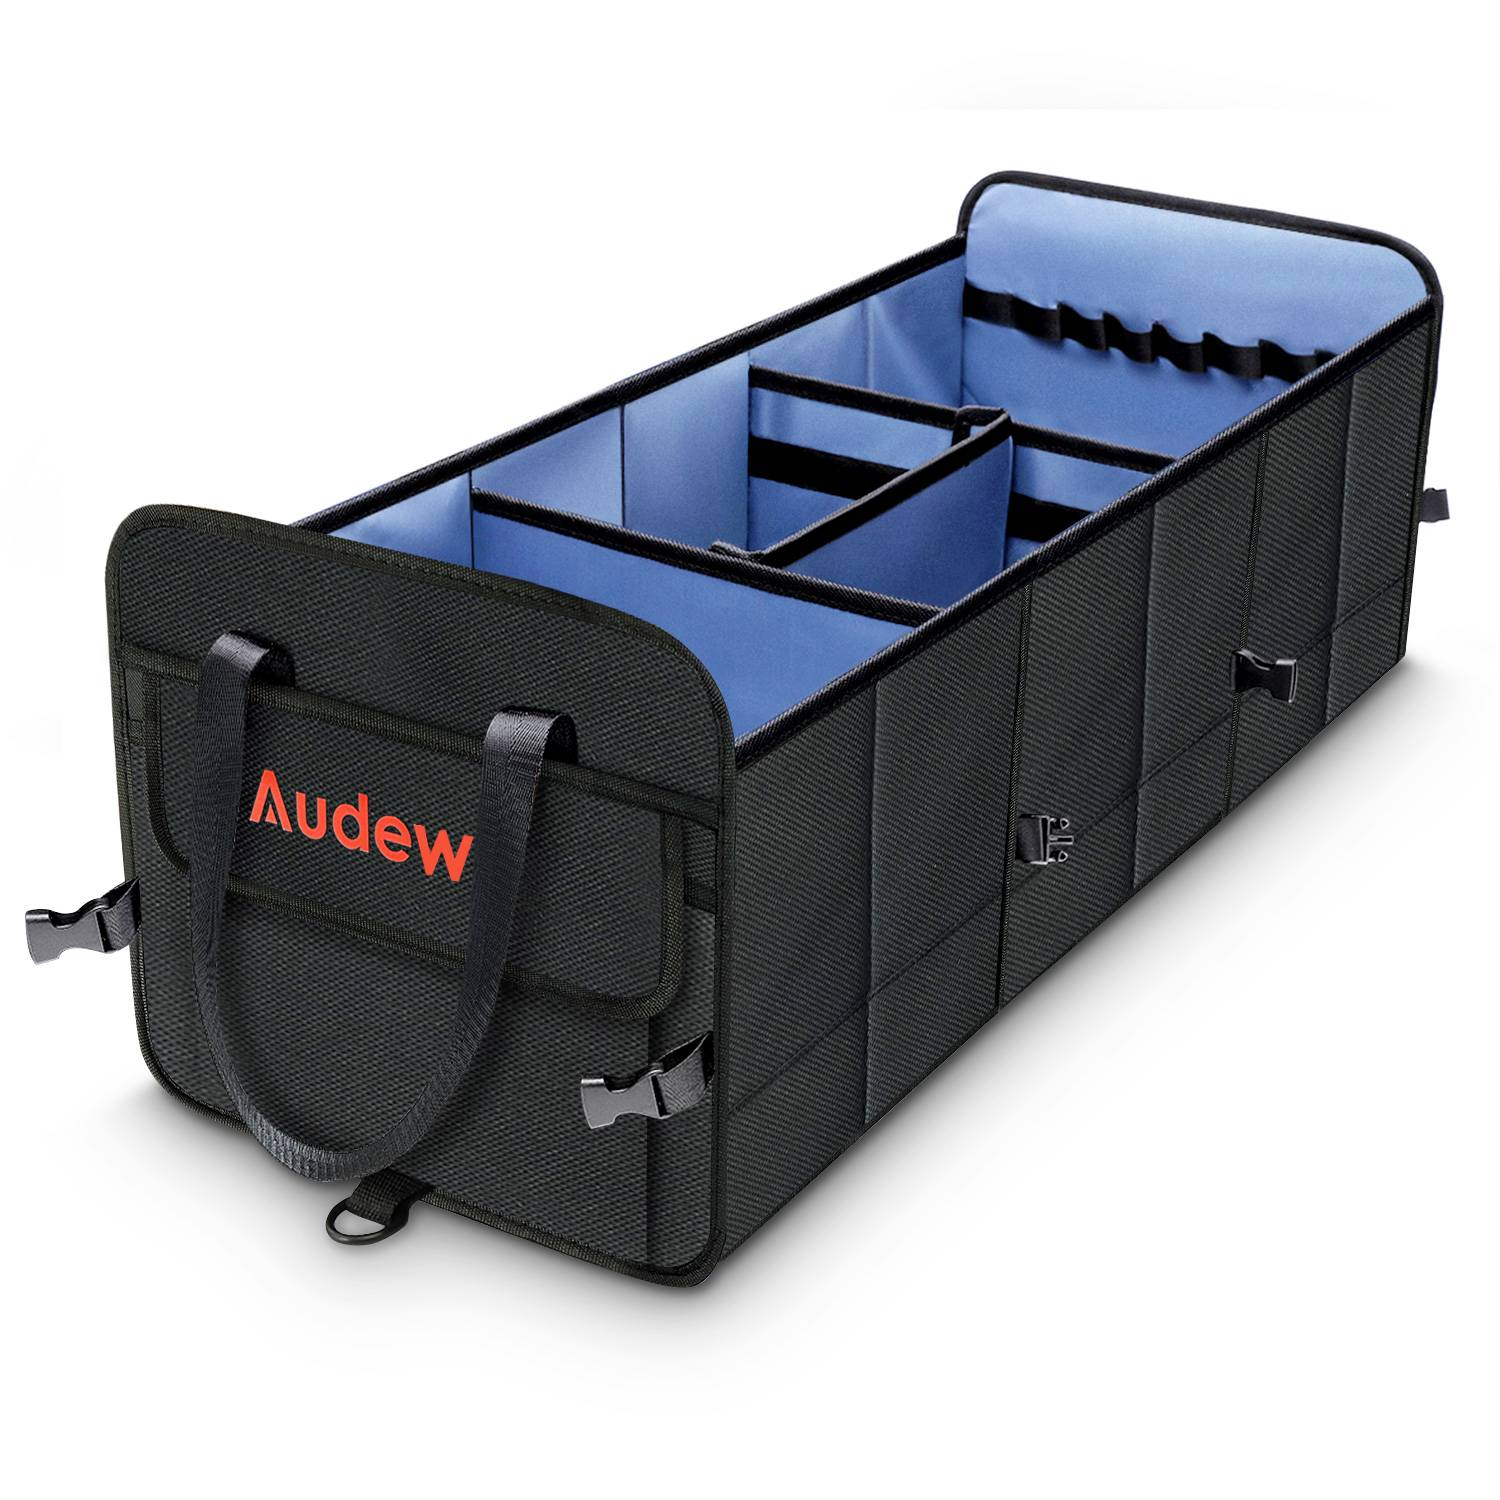 Audew Trunk Organizer Portable Car Storage Bag, Large Space to Store Belongings for SUV, Vehicle, Truck, Auto, Grocery, Home & Garage